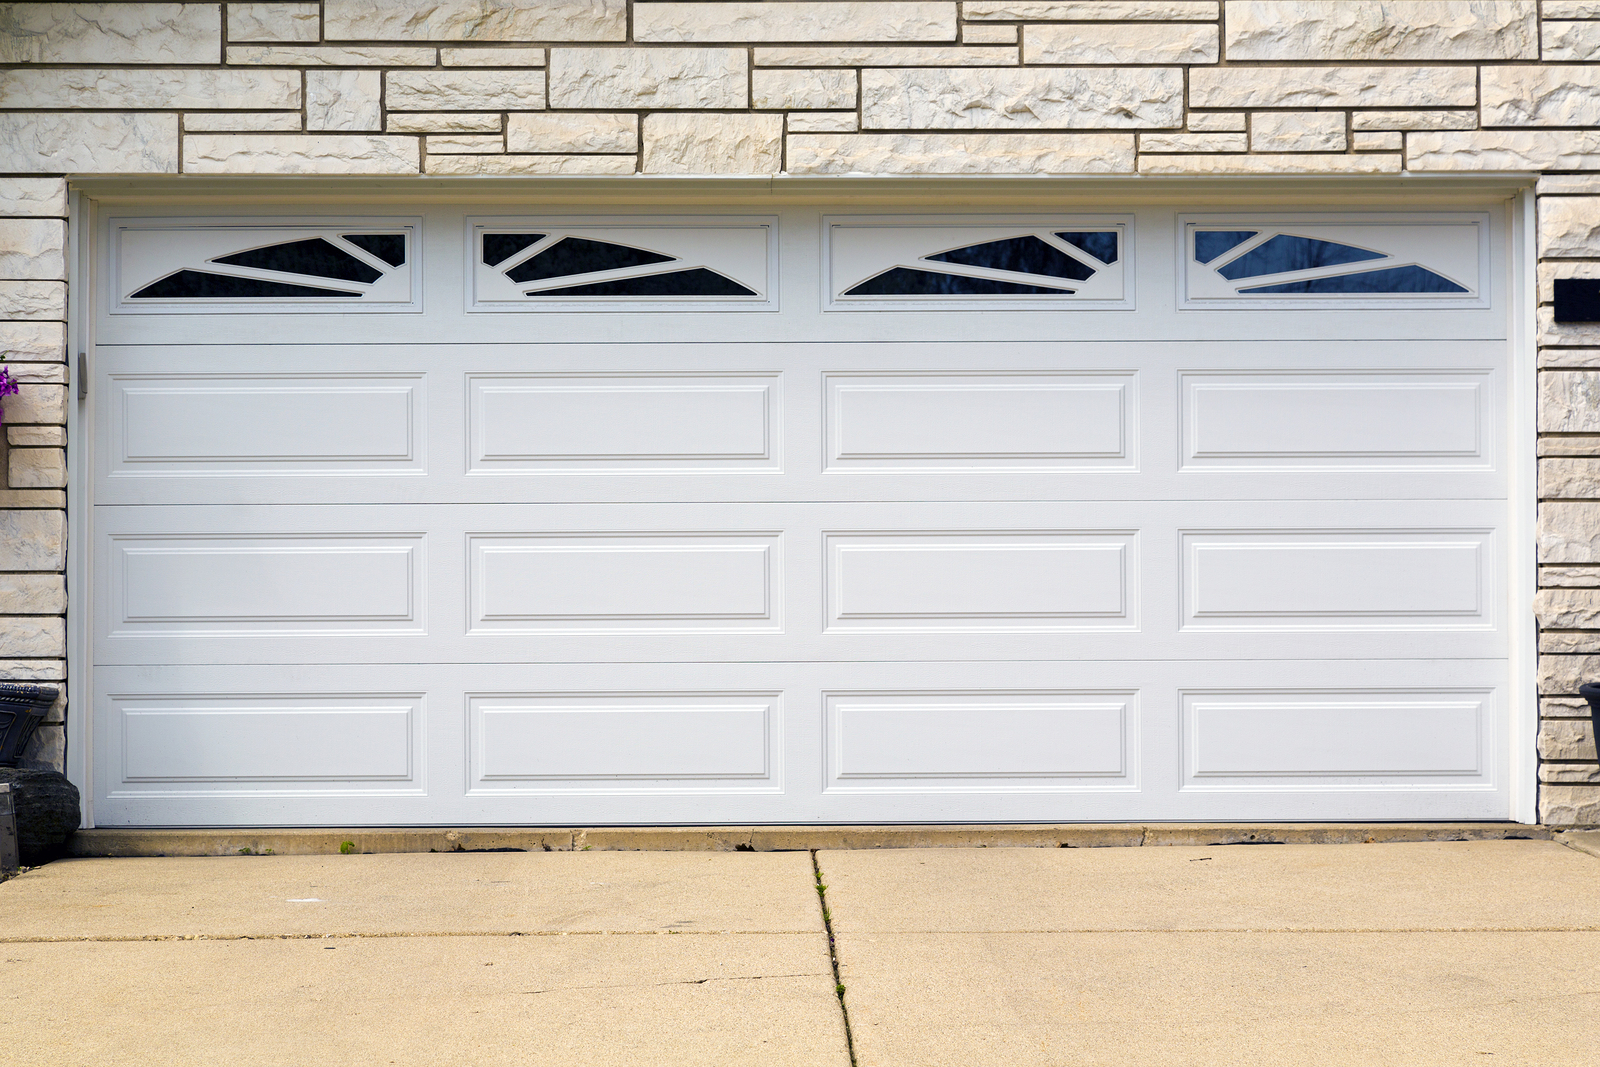 5 reasons to choose a sectional garage door perfect How to select a garage door opener